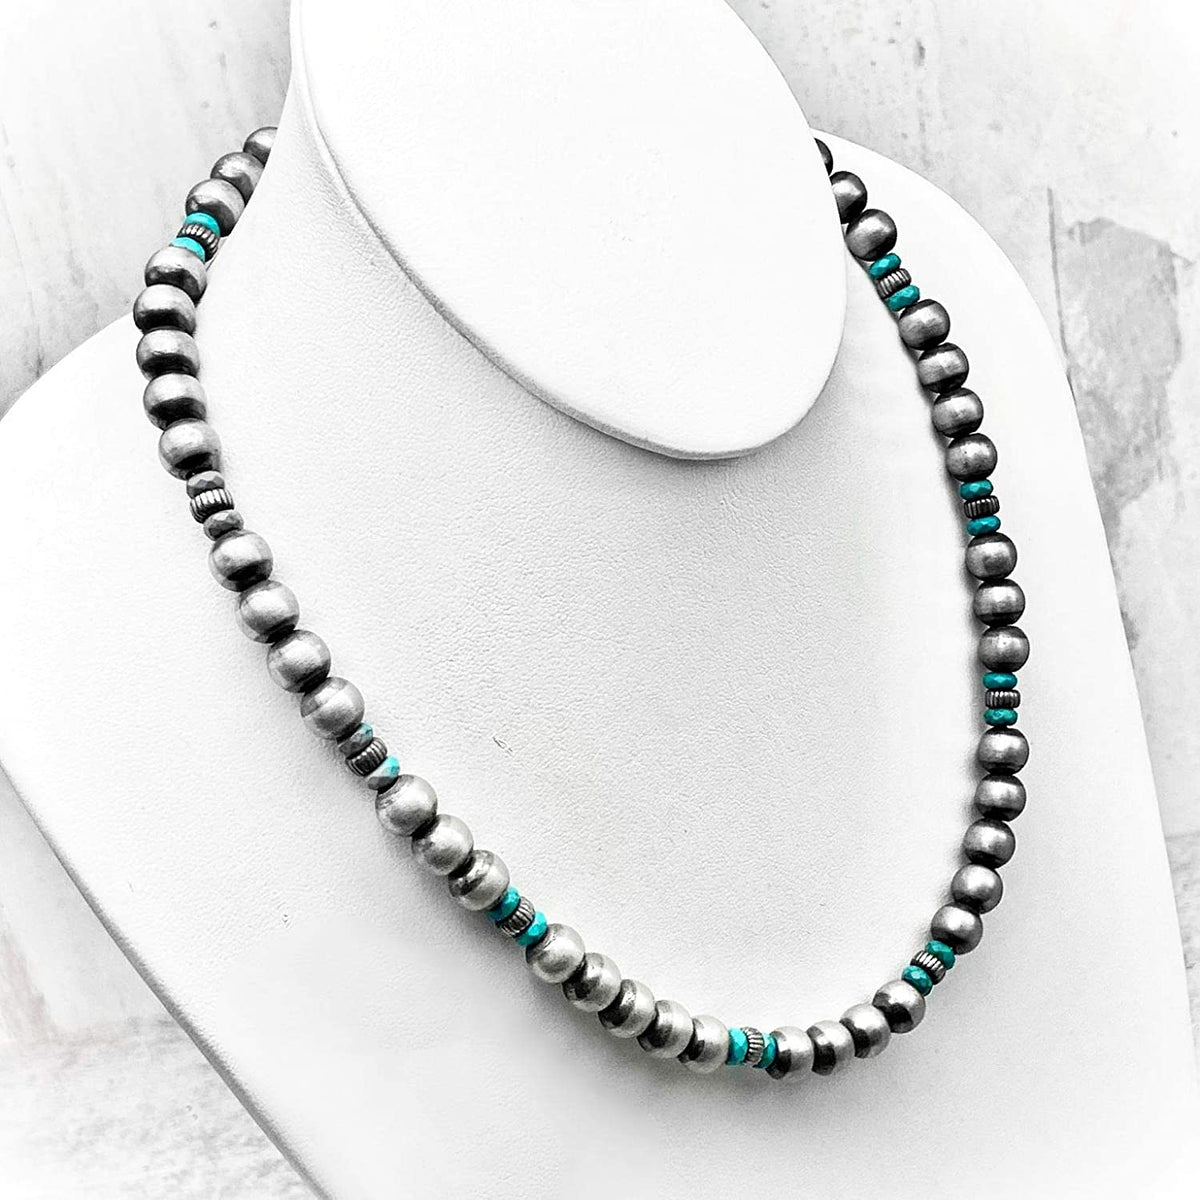 20 inch Genuine Navajo Pearl Necklace with Turquoise, Sterling Silver, Authentic Navajo Native American USA Handmade in New Mexico